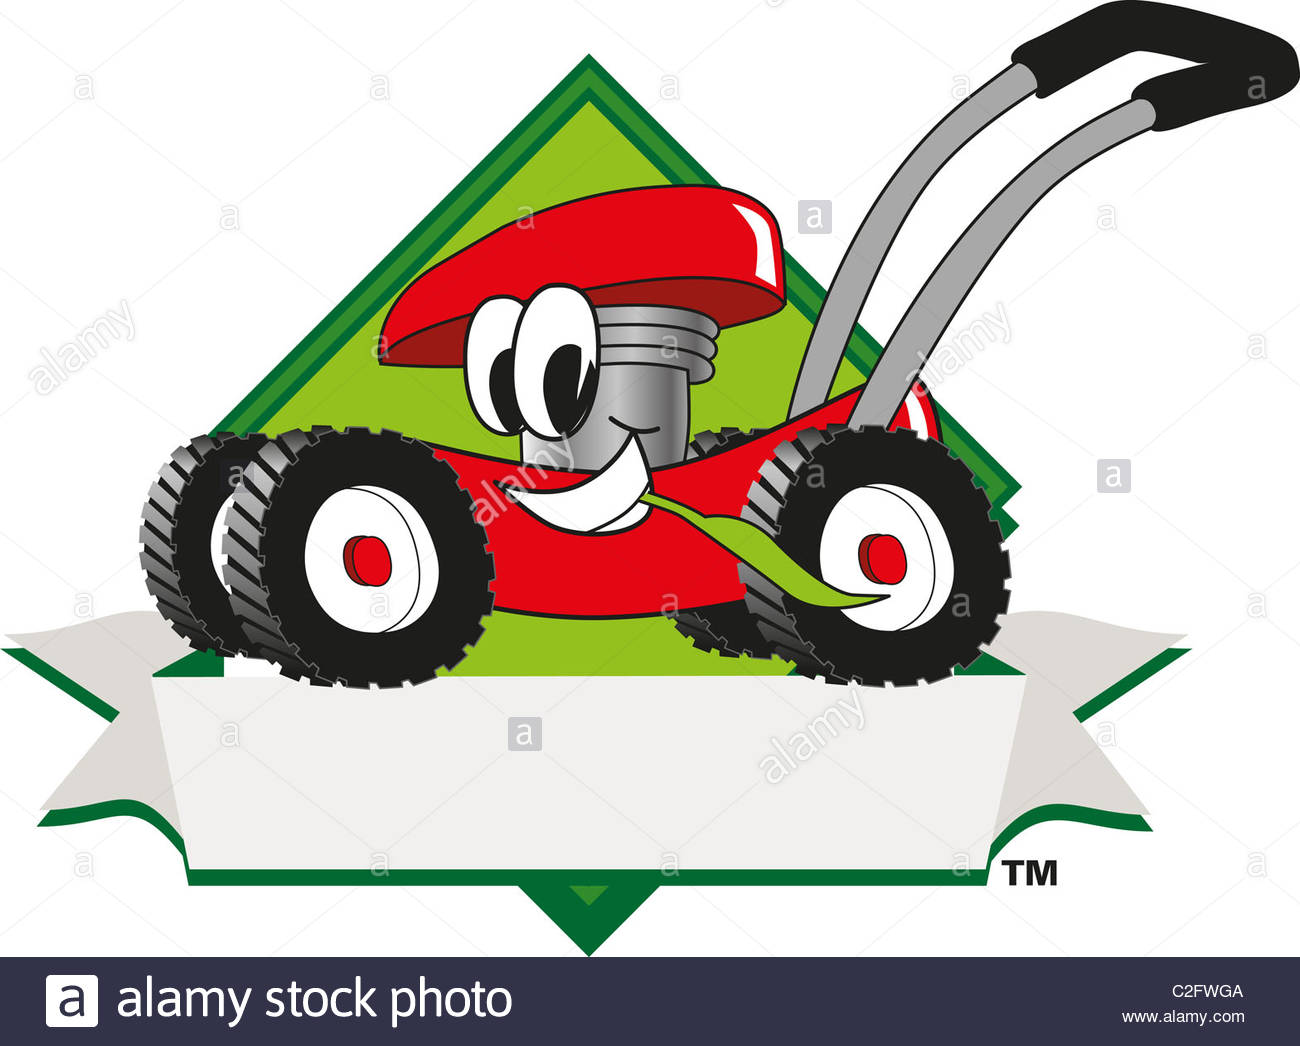 1300x1046 Mower Clipart Stock Photos Amp Mower Clipart Stock Images